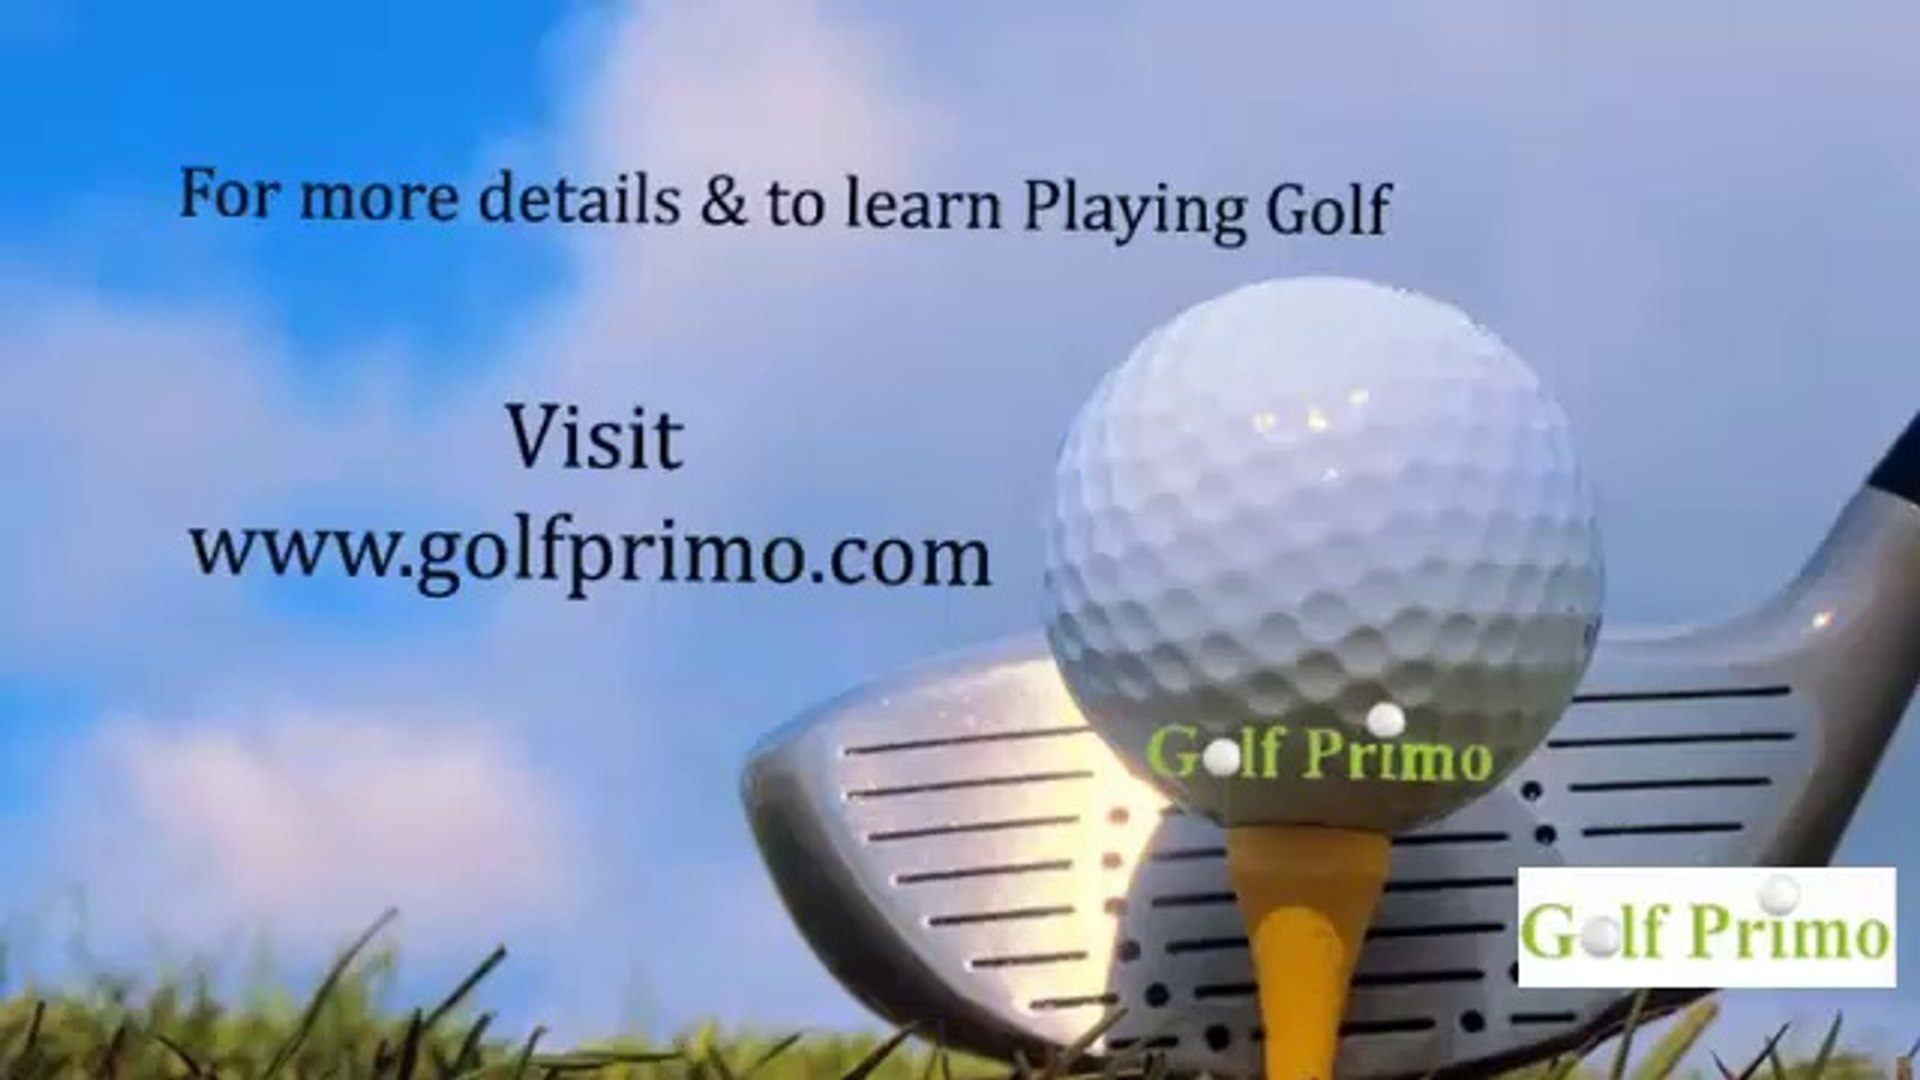 Golf Primo - Introduction